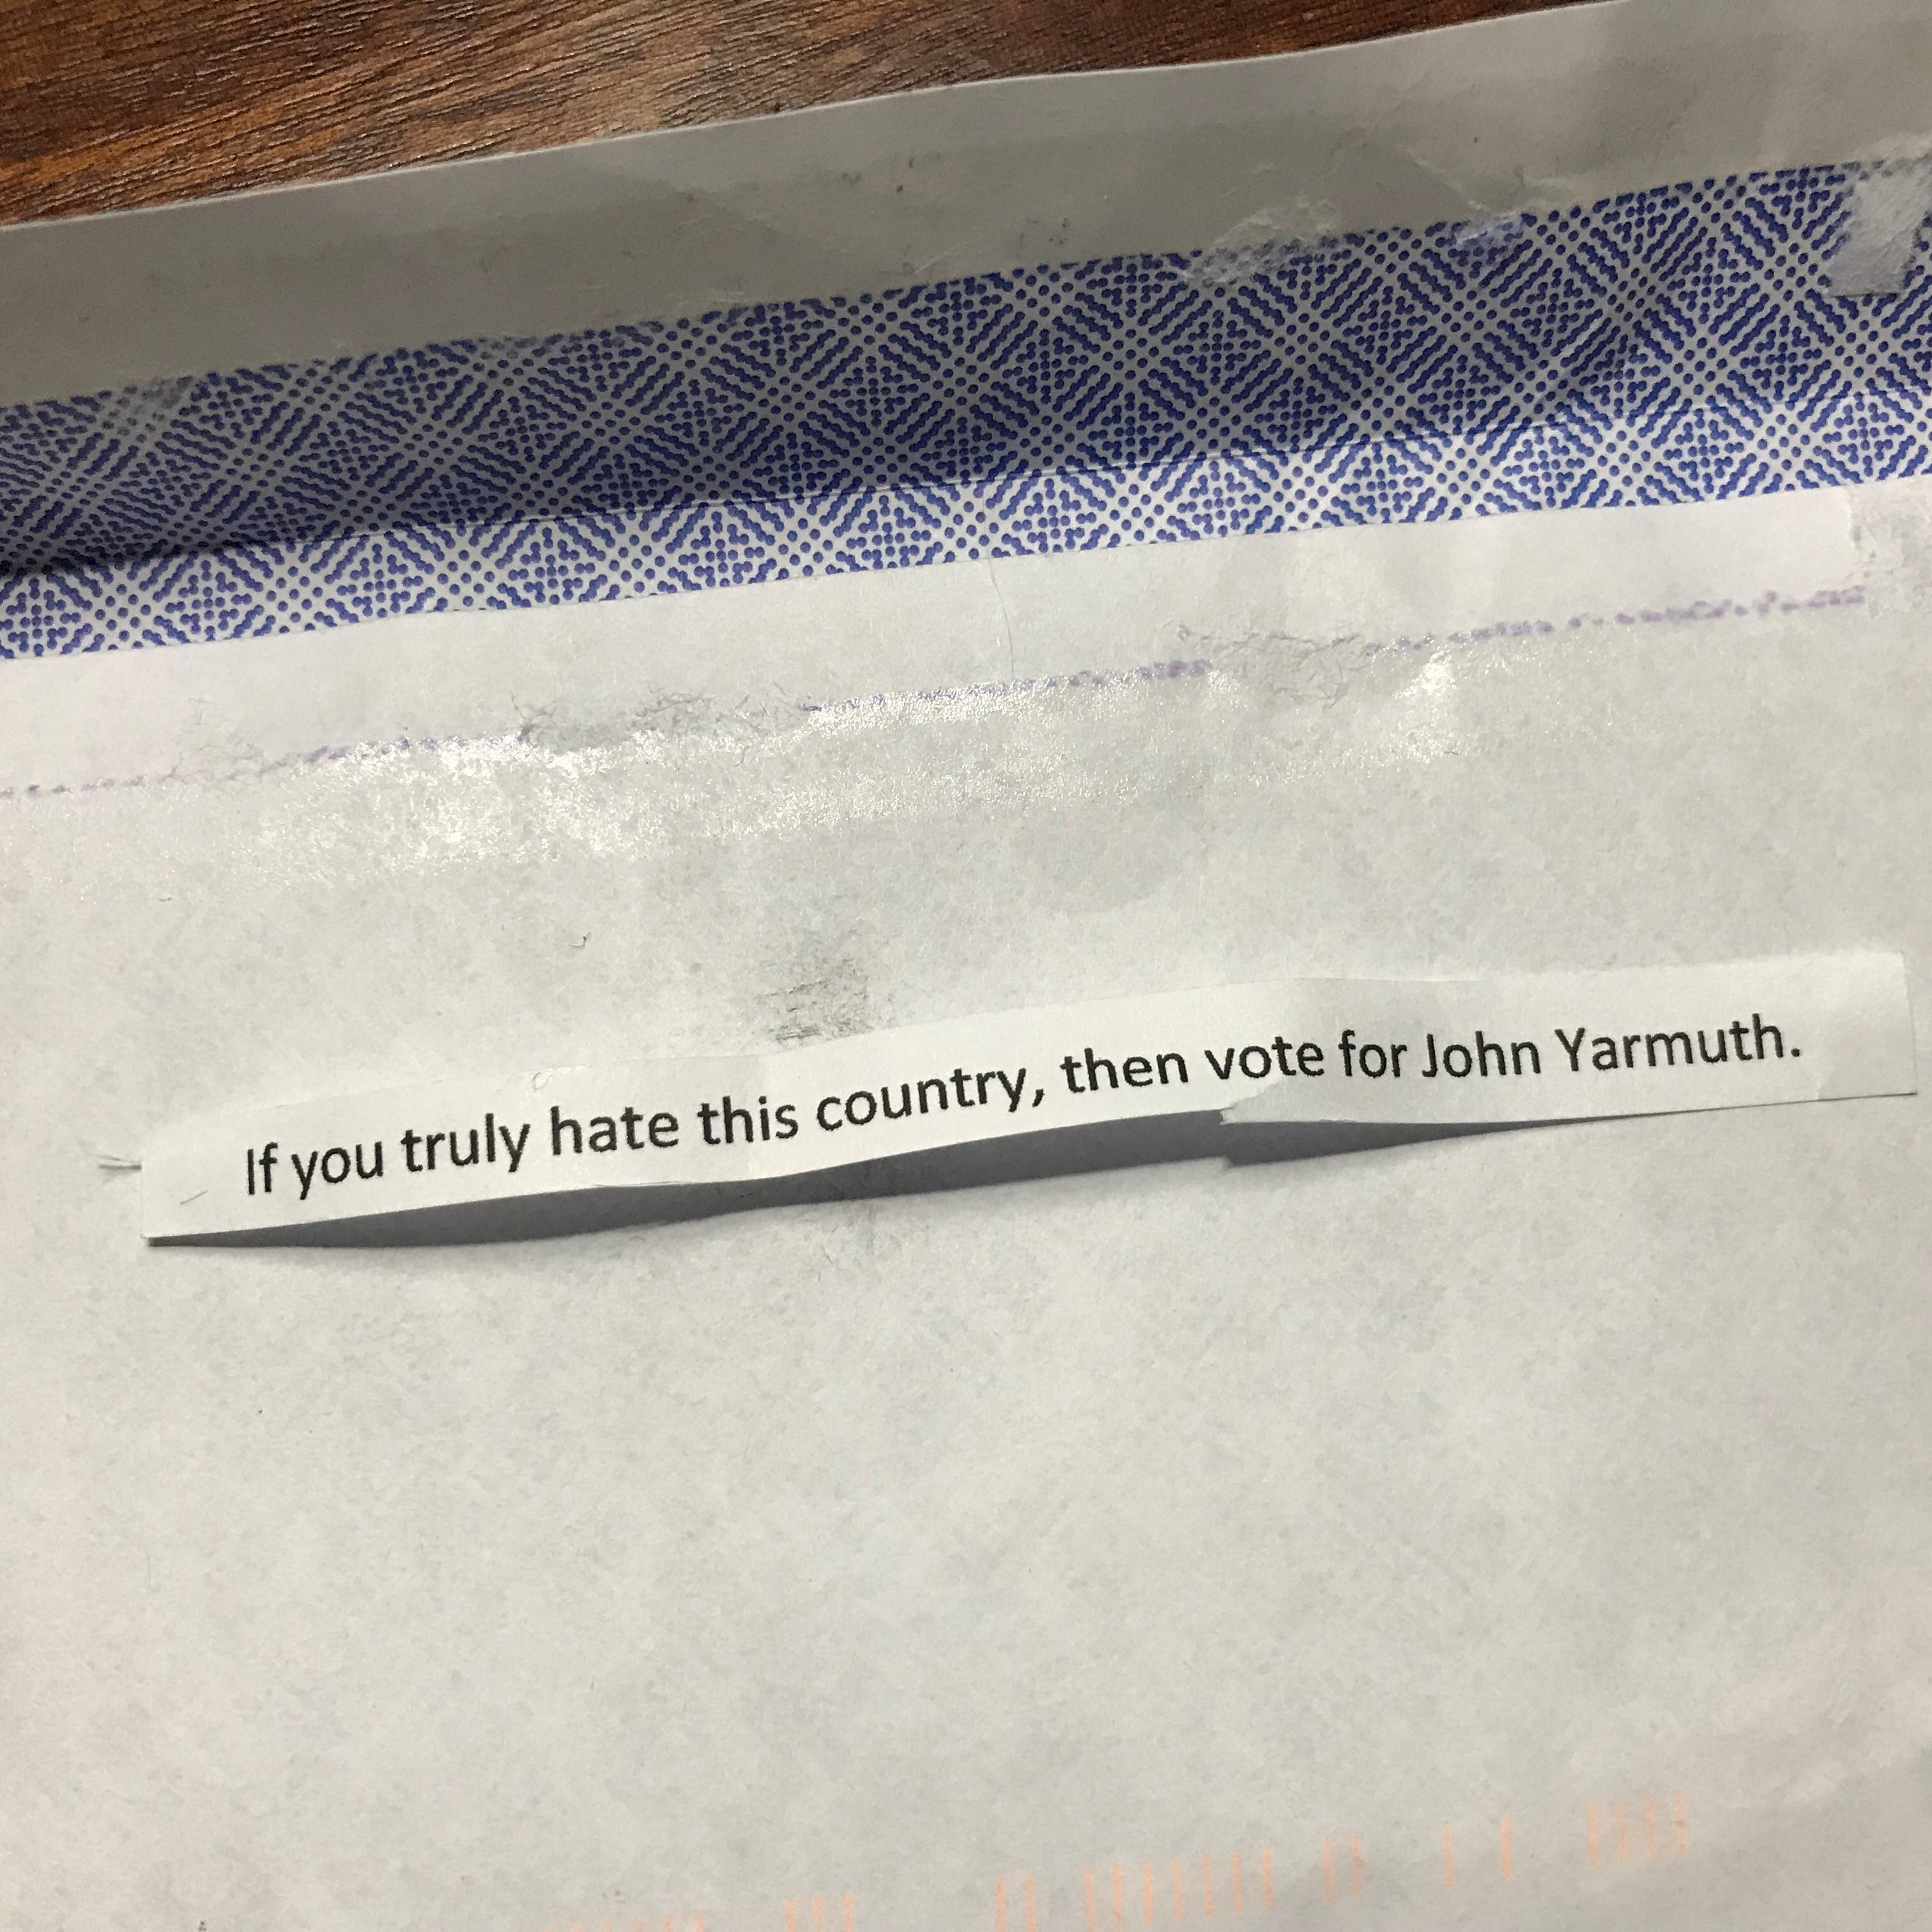 'Creepy' letters bashing John Yarmuth found in St. Matthew's mailboxes